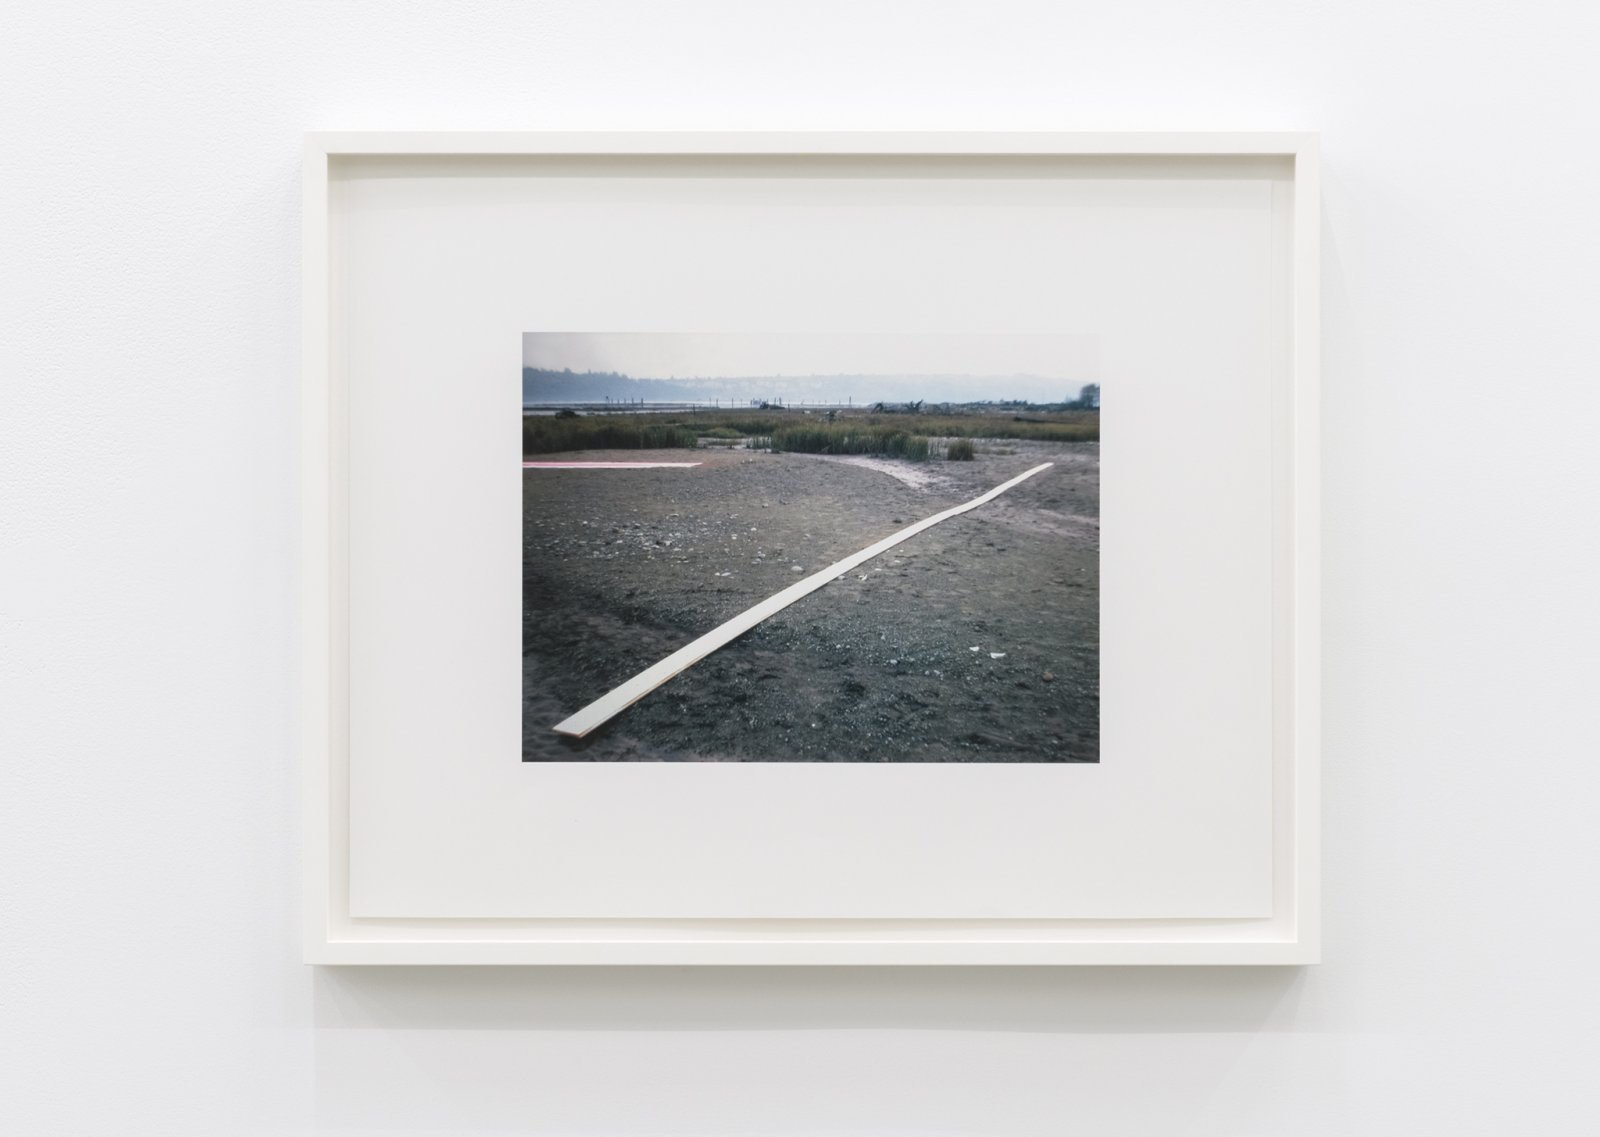 Ian Wallace, White Line (First Version 1969), 1969–2012, framed inkjet print, 22 x 27 in. (60 x 69 cm) by Ian Wallace